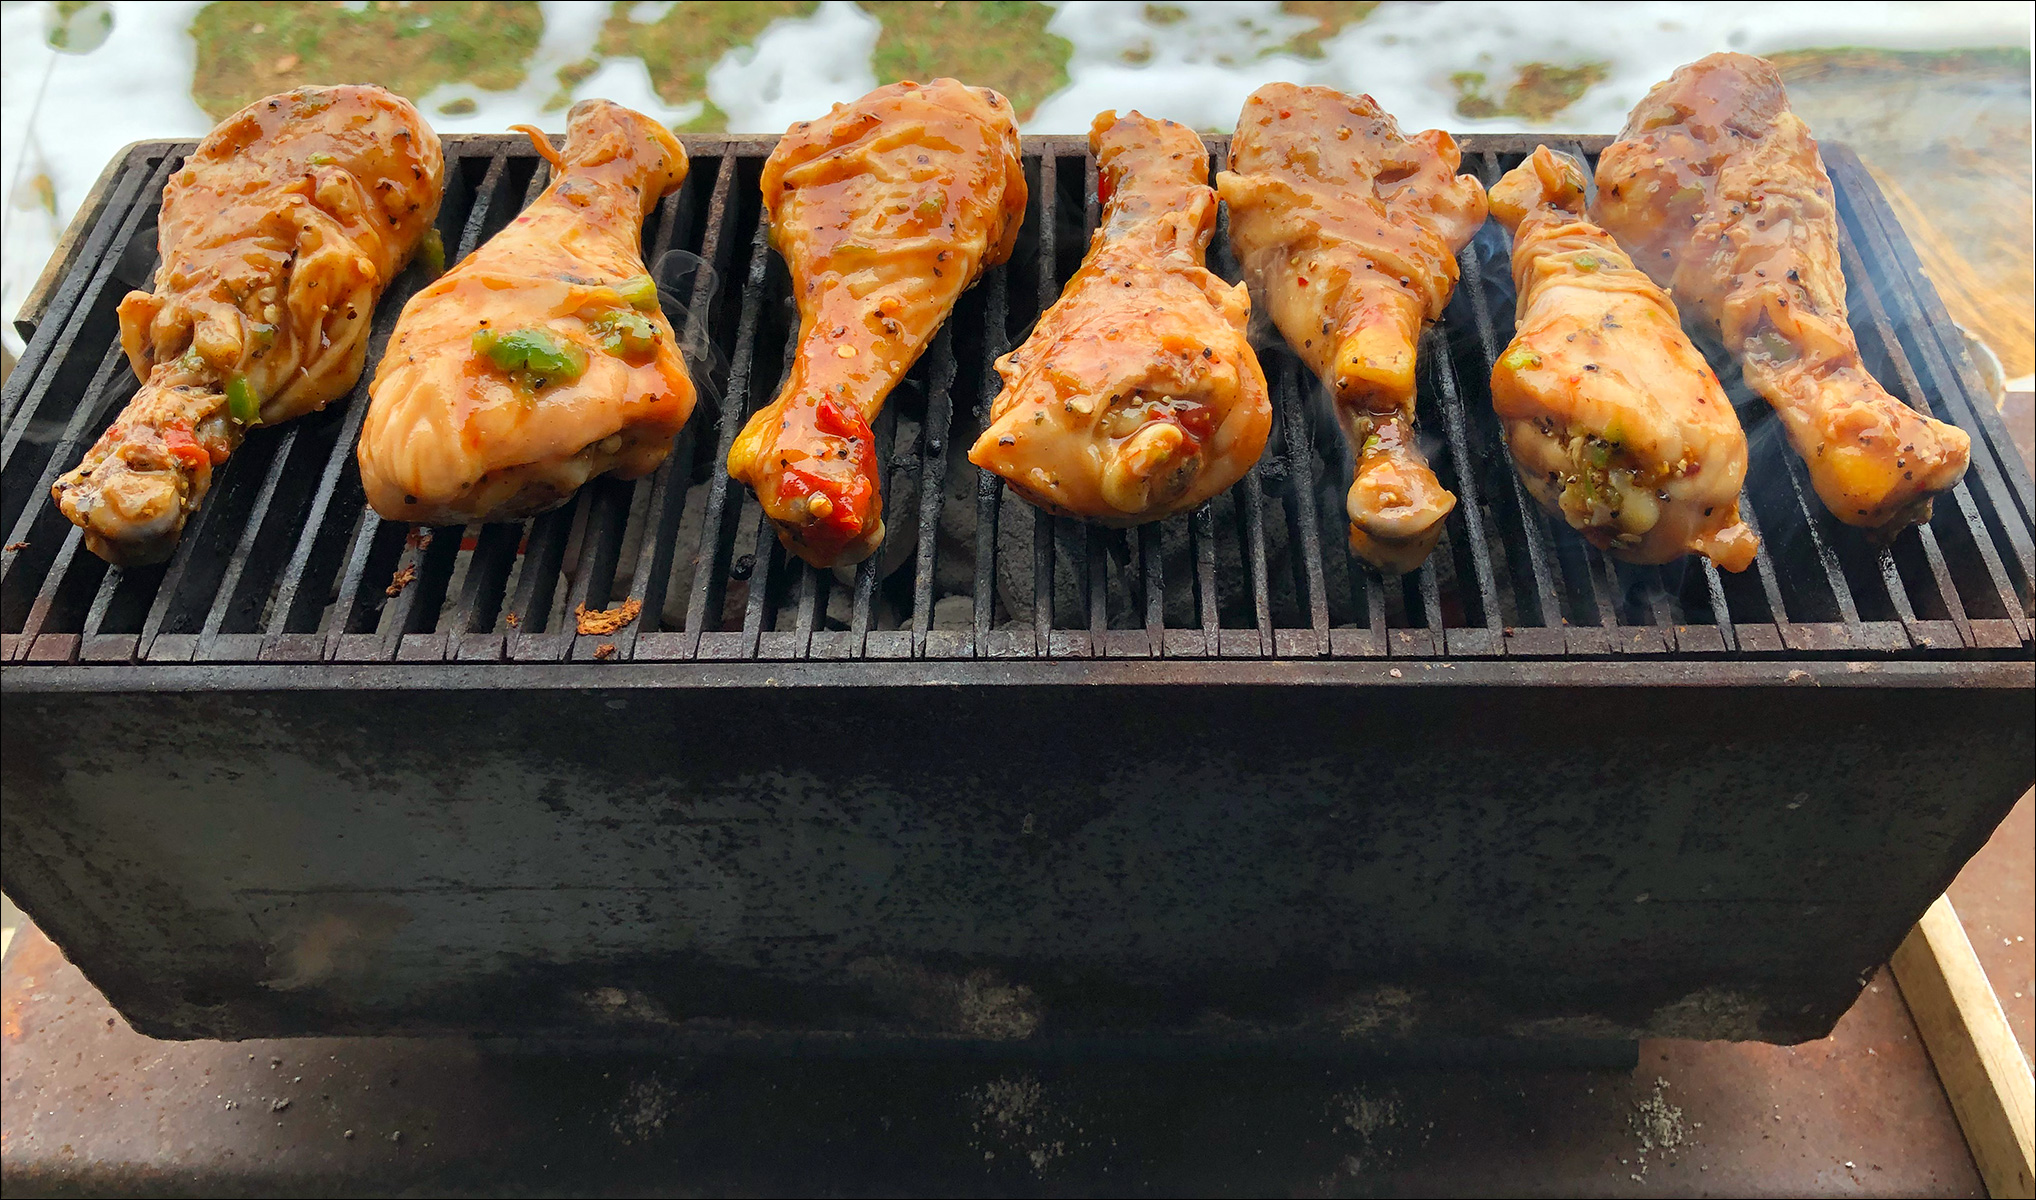 Chicken Drumsticks on a Mini Peacemaker Grill Andrew Parent